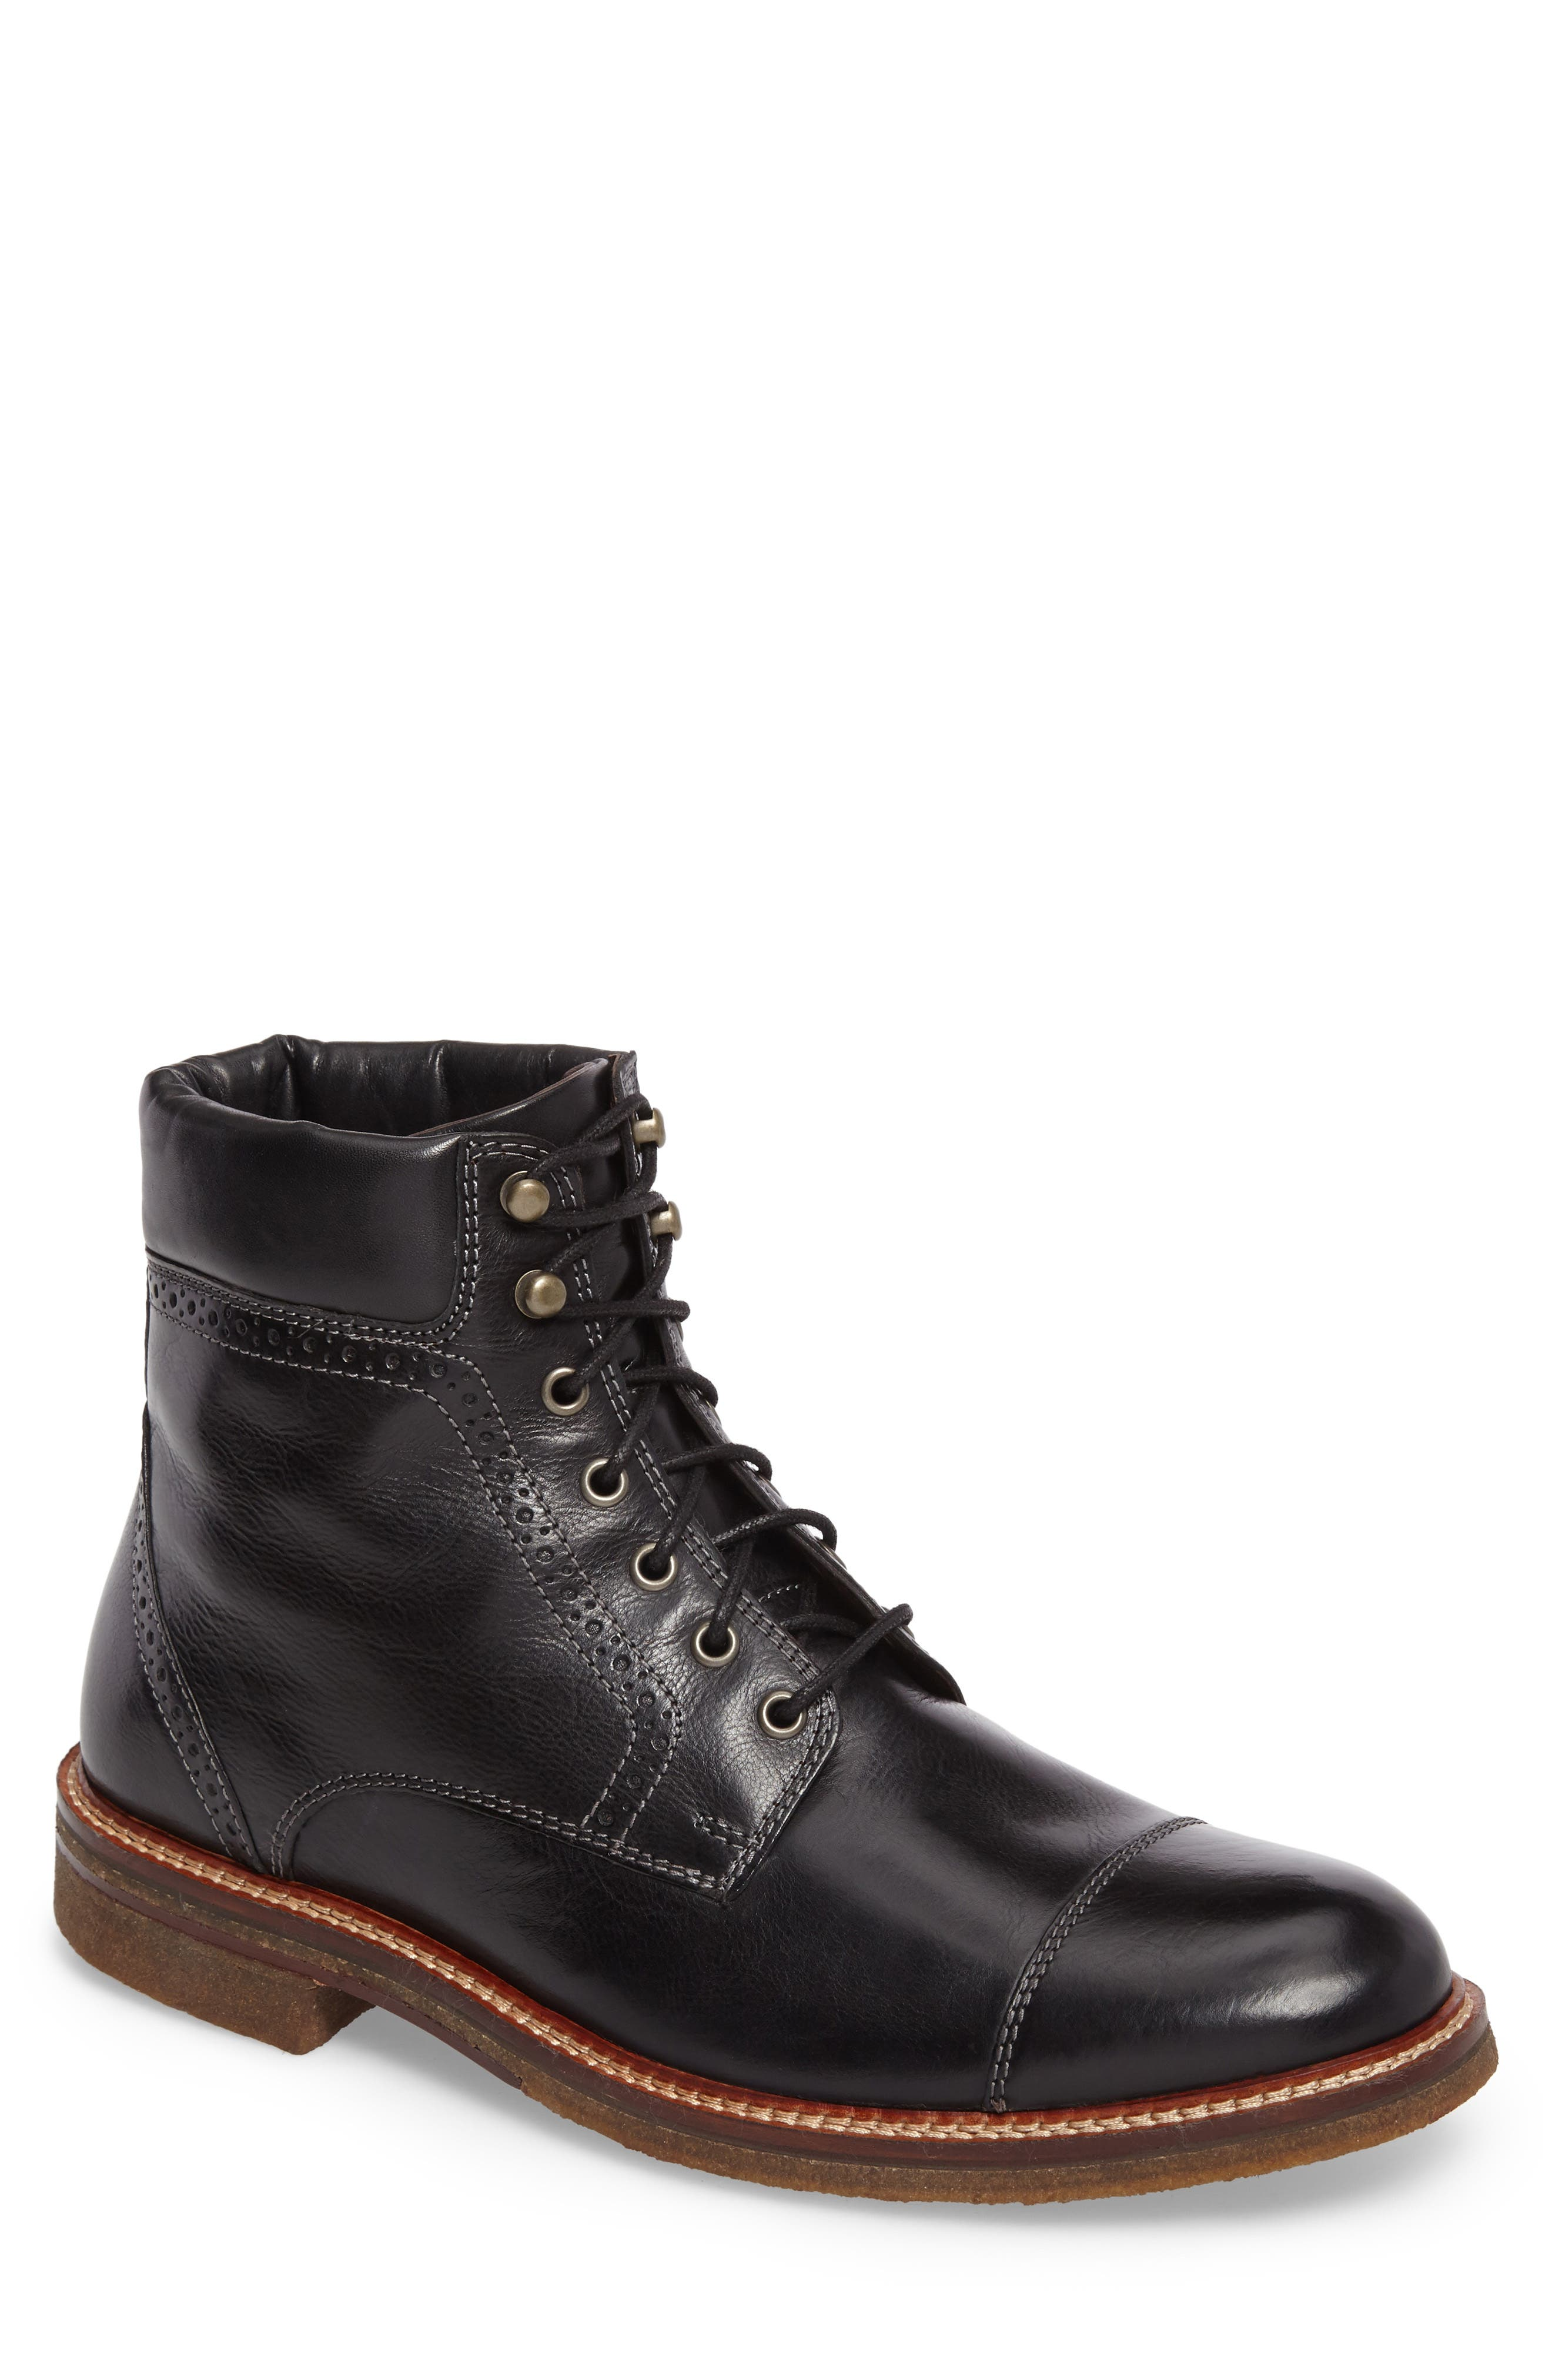 Forrester Cap Toe Boot,                             Main thumbnail 1, color,                             BLACK LEATHER